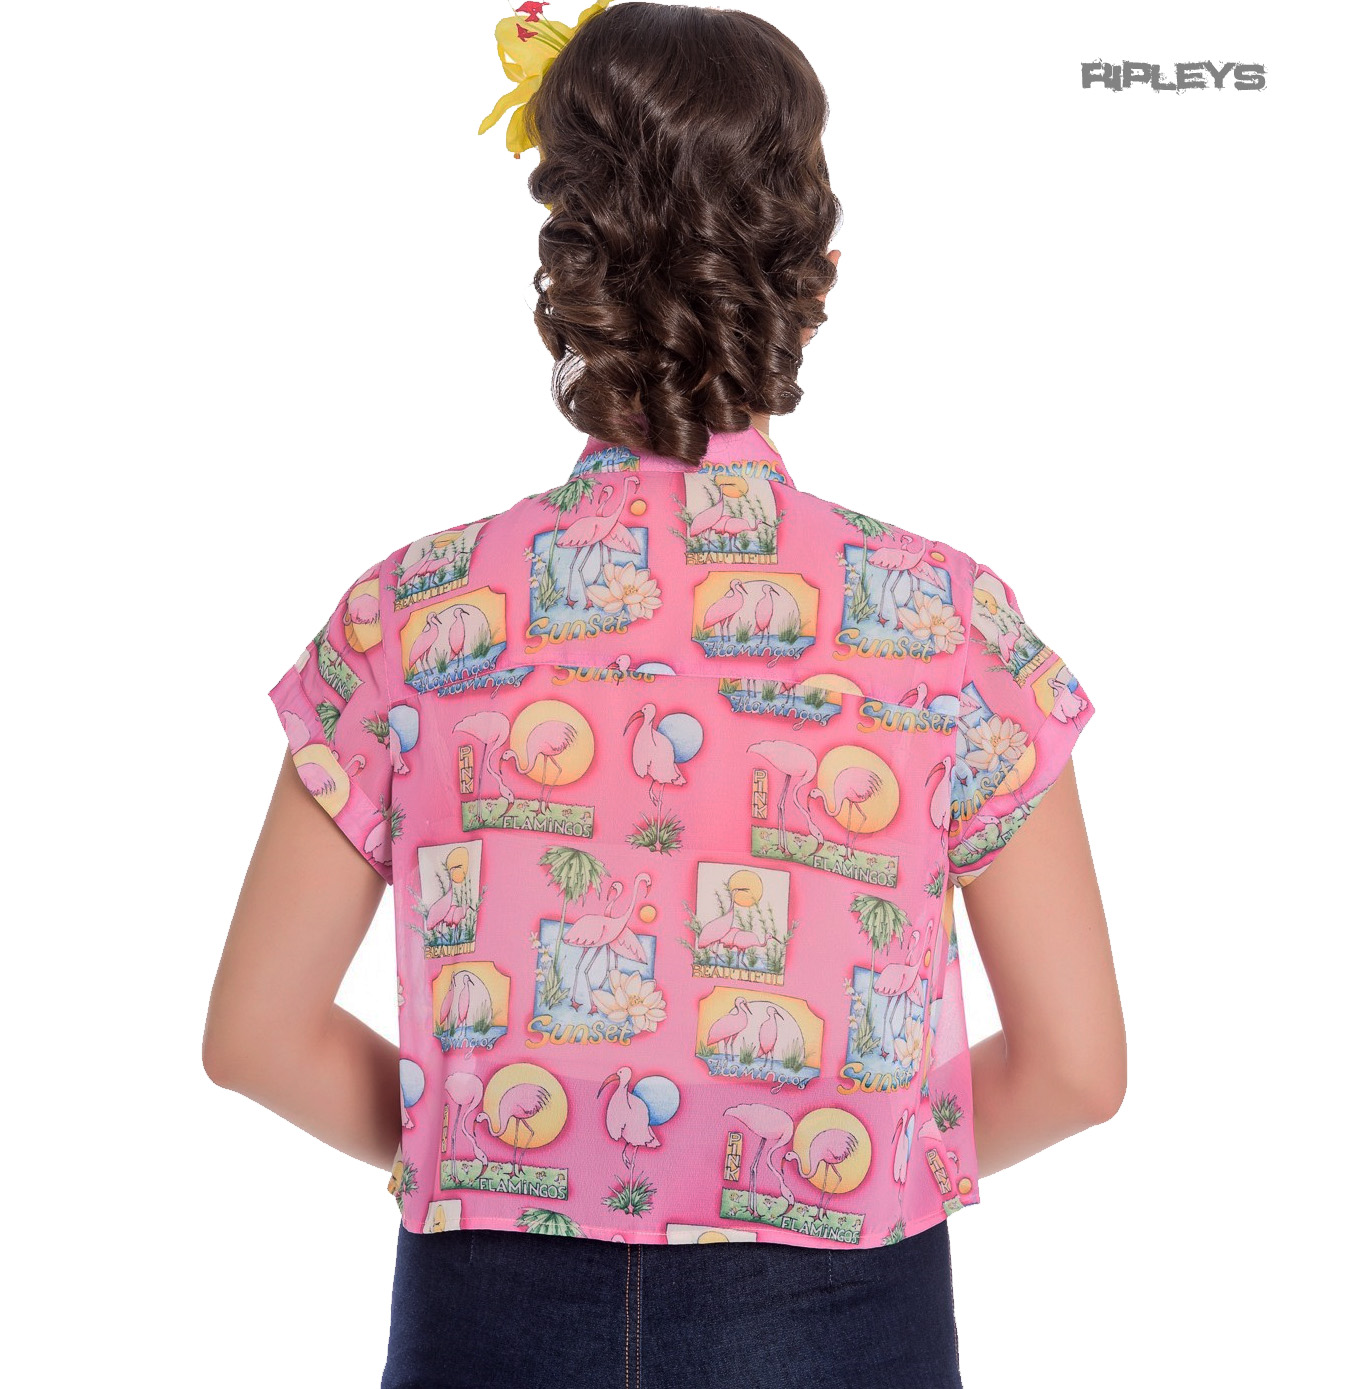 thumbnail 19 - Hell Bunny 50s Retro Top Pink Flamingo MAXINE Cropped Blouse Shirt All Sizes